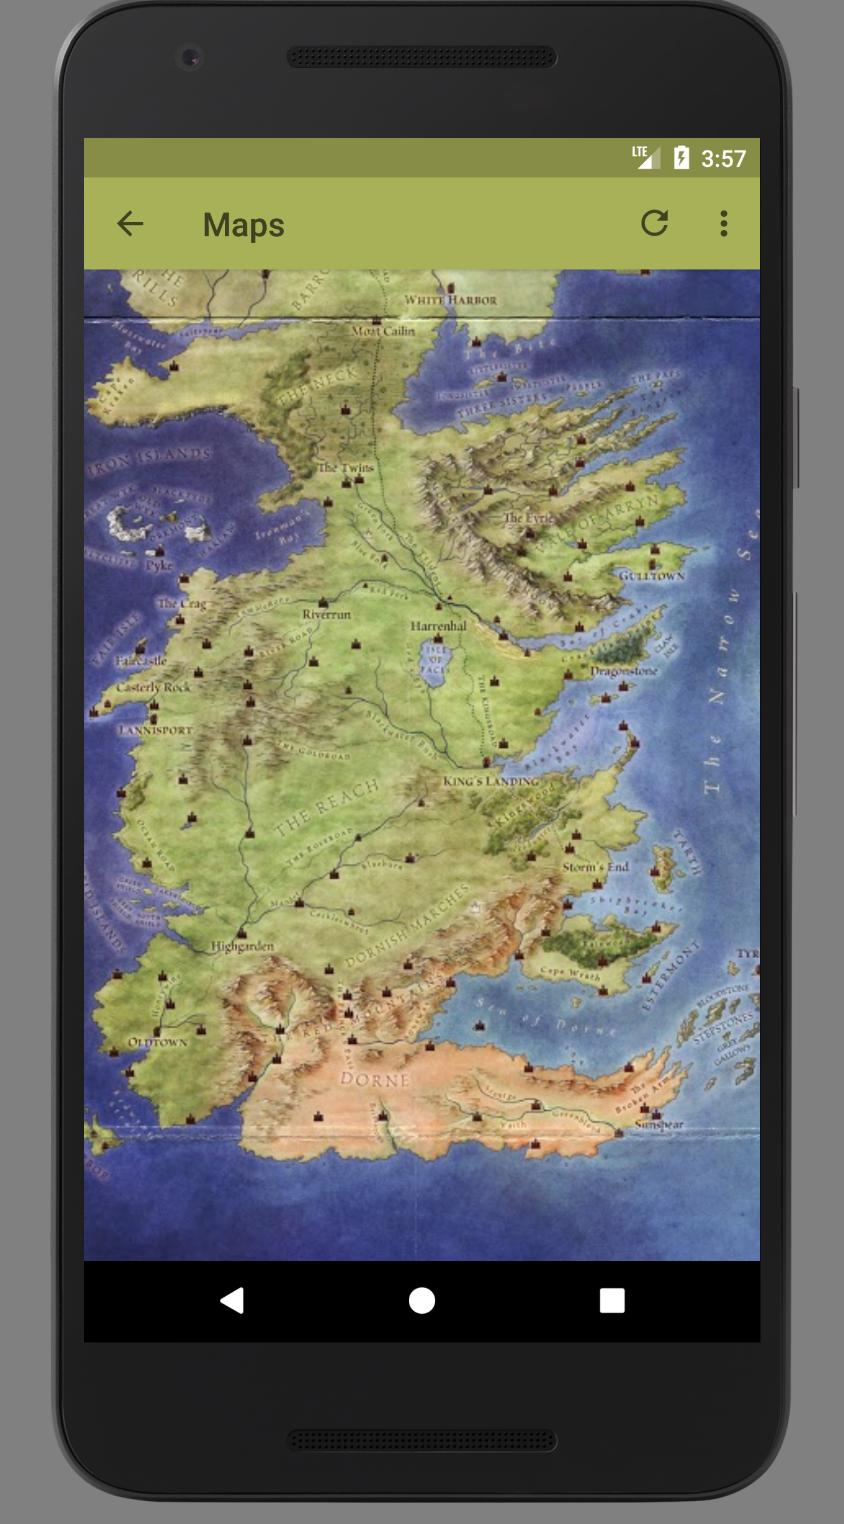 Game of Thrones Map for Android - APK Download Game Of Thrones Map Poster on game.of thrones s3 poster, silicon valley map poster, red dead redemption map poster, dark souls map poster, walking dead map poster, grand theft auto v map poster, supernatural map poster, united states map poster, community map poster, life map poster, fallout new vegas map poster, gravity falls map poster, skyrim map poster, world of warcraft map poster, hobbit unexpected journey map poster,